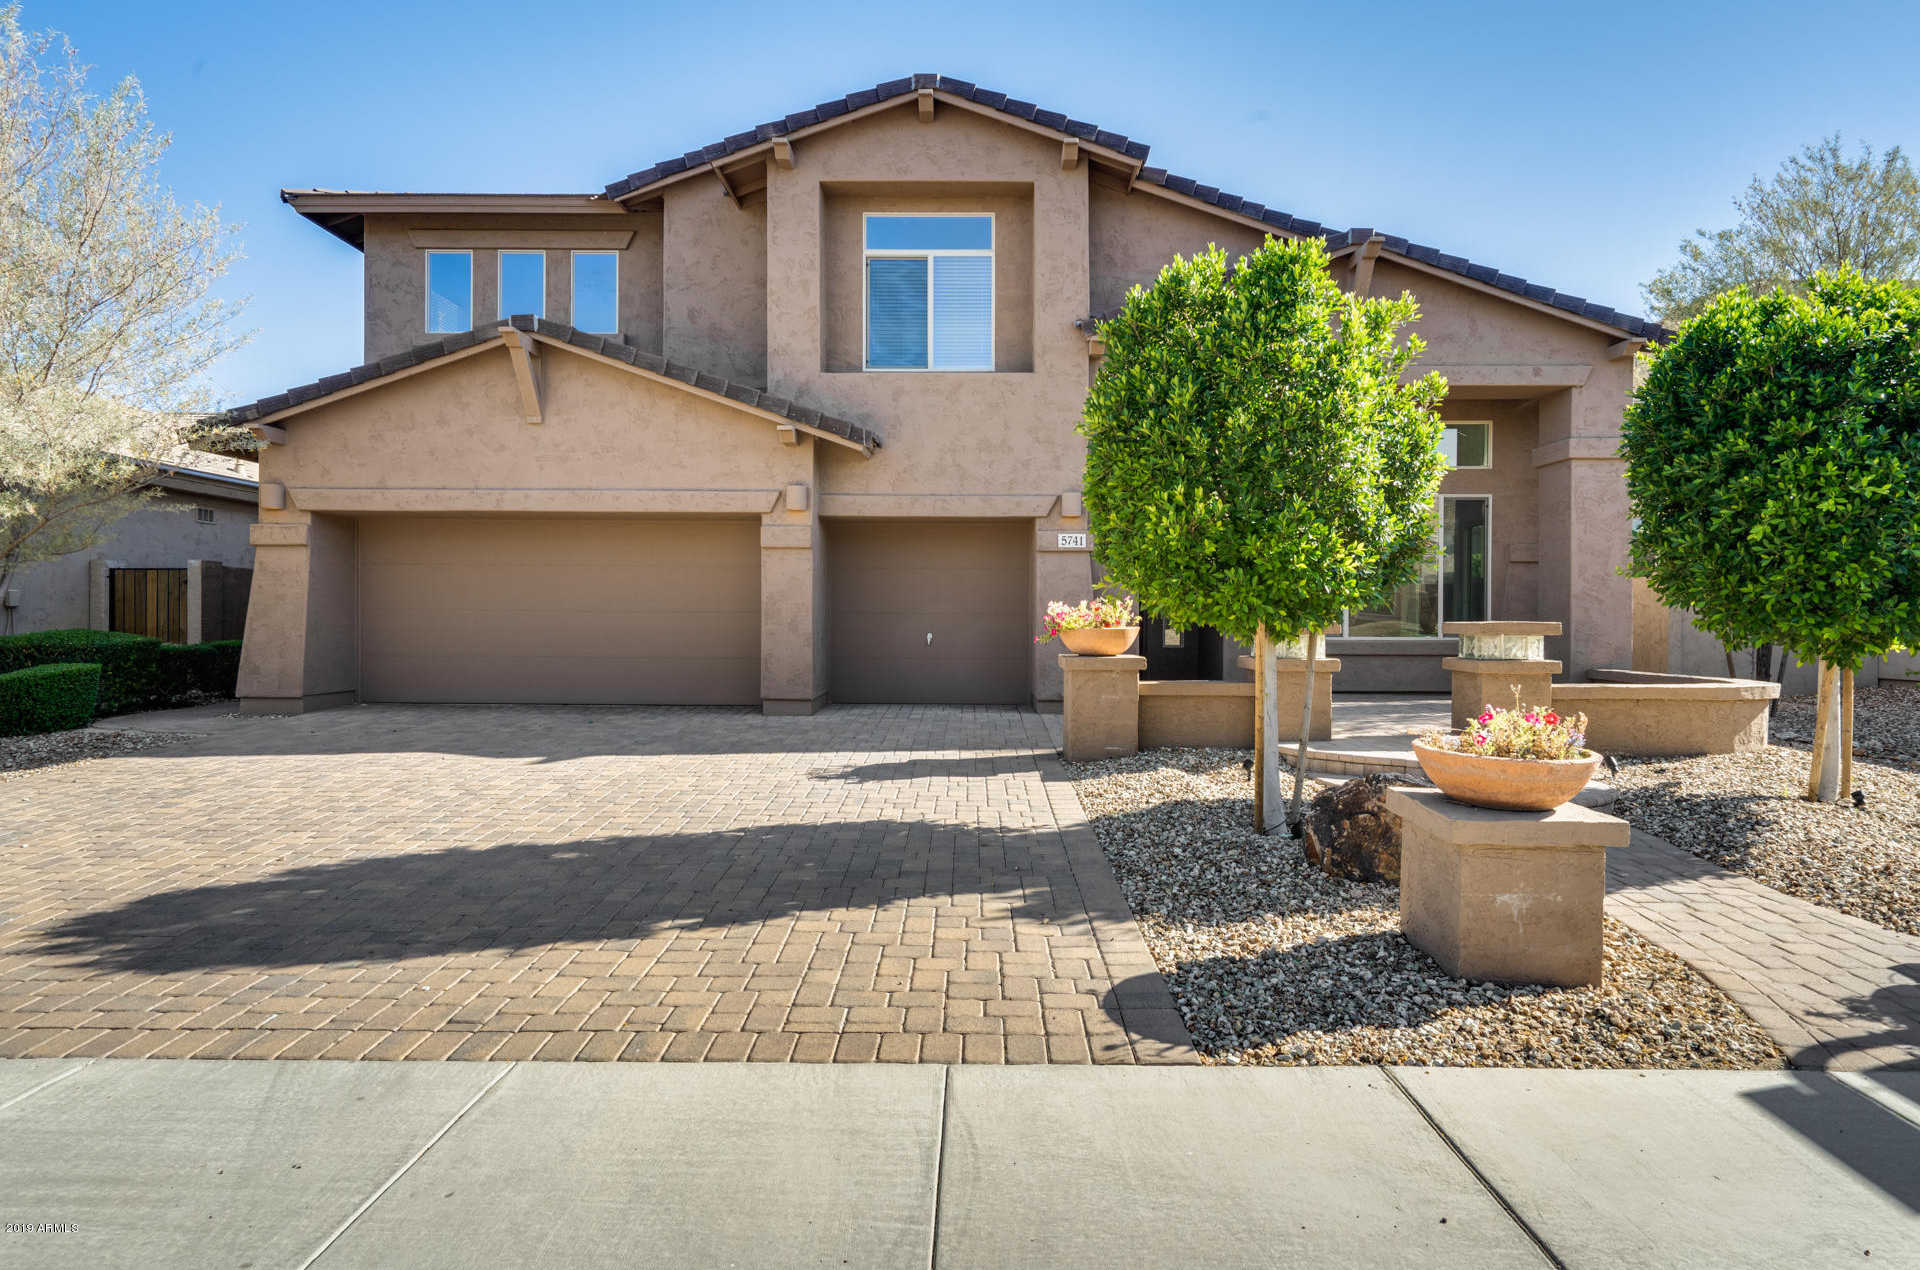 $454,900 - 4Br/3Ba - Home for Sale in Stetson Valley Parcels 30 31 32 33, Phoenix